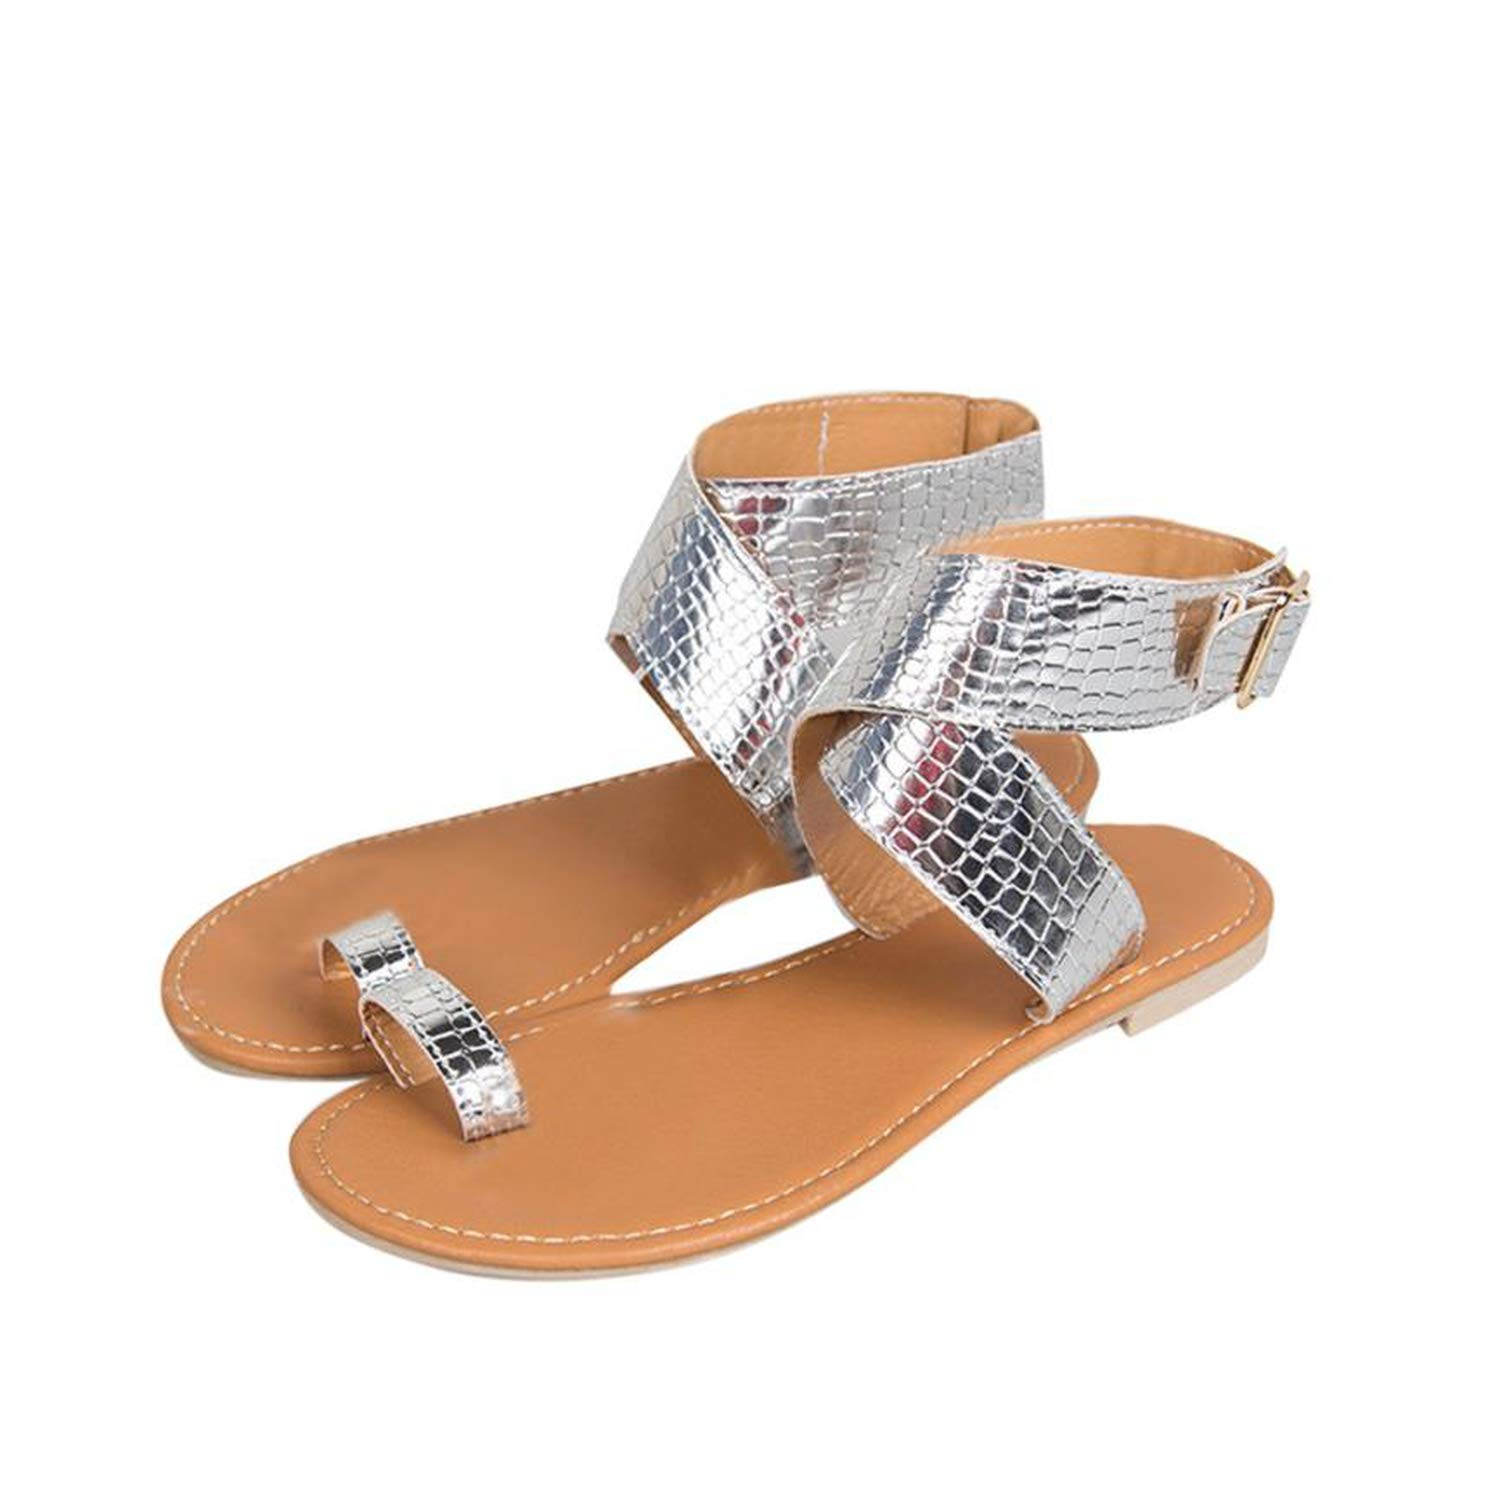 - WEPROI Women Cross Belt Rome Strappy Gladiator Low Flat Flip Flops Beach Sandals shoes,gold1,6.5,United States